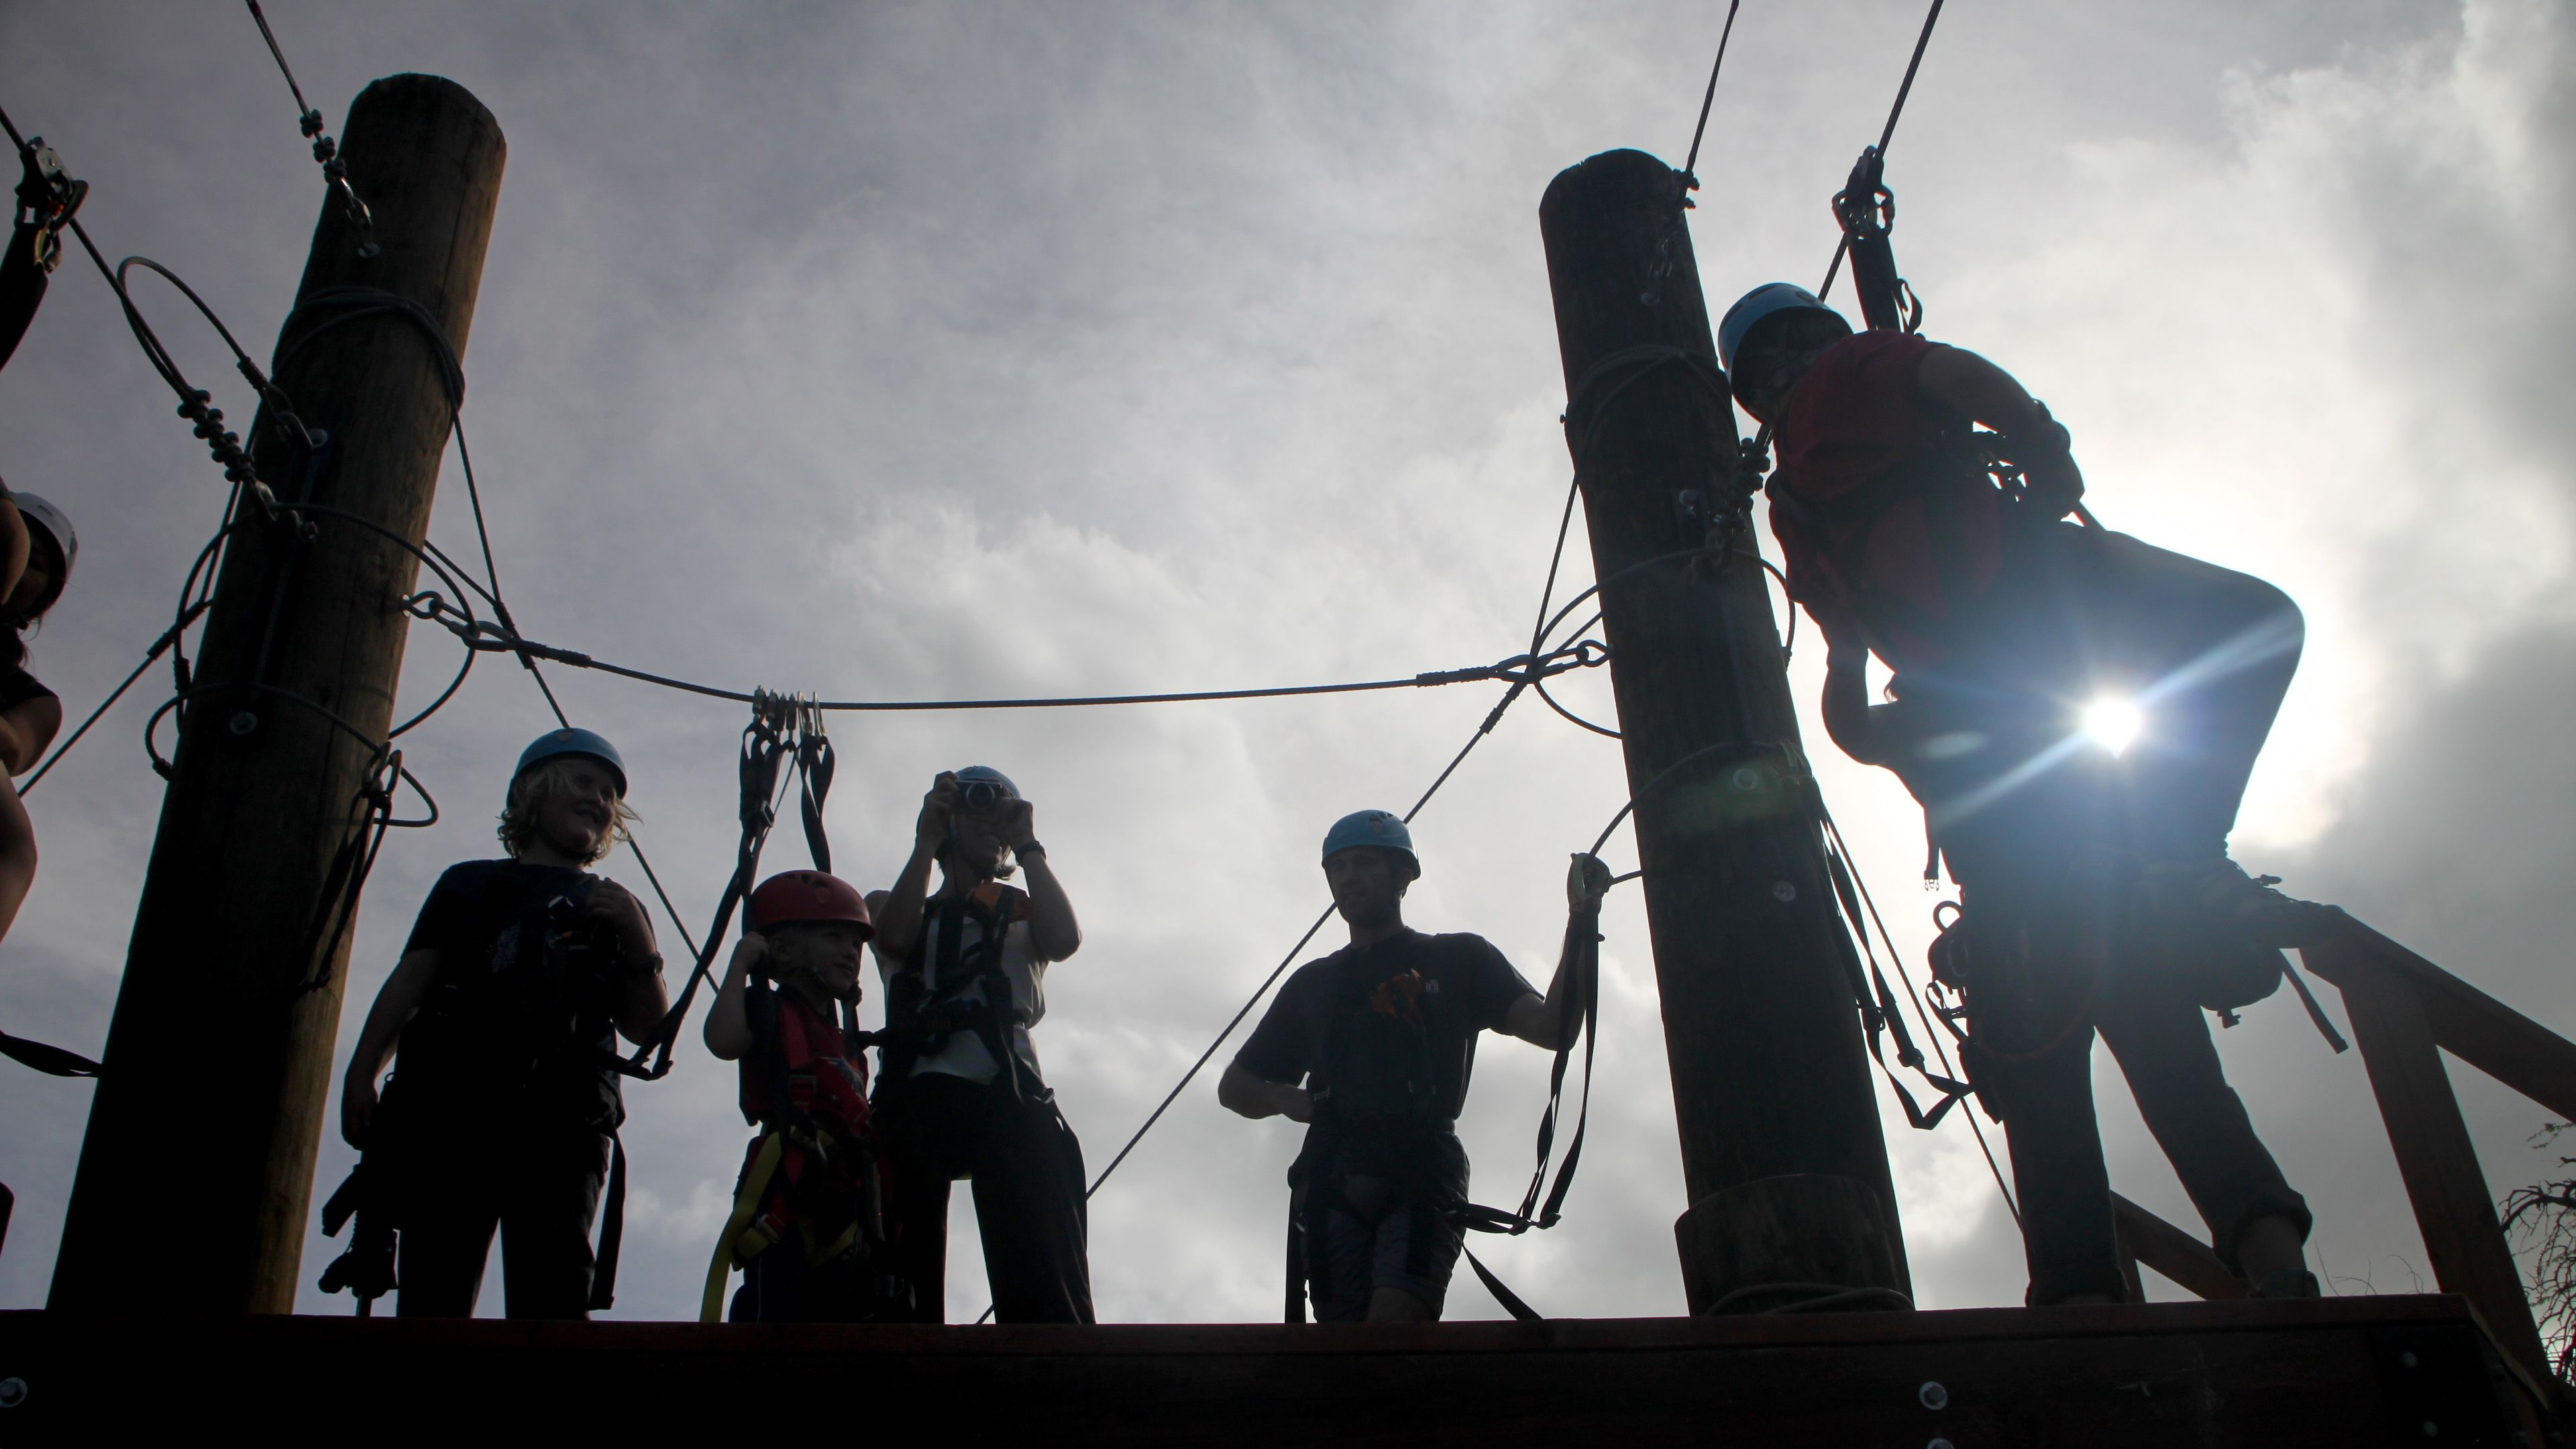 Silhouette of ziplining group on the launch platform on Oahu